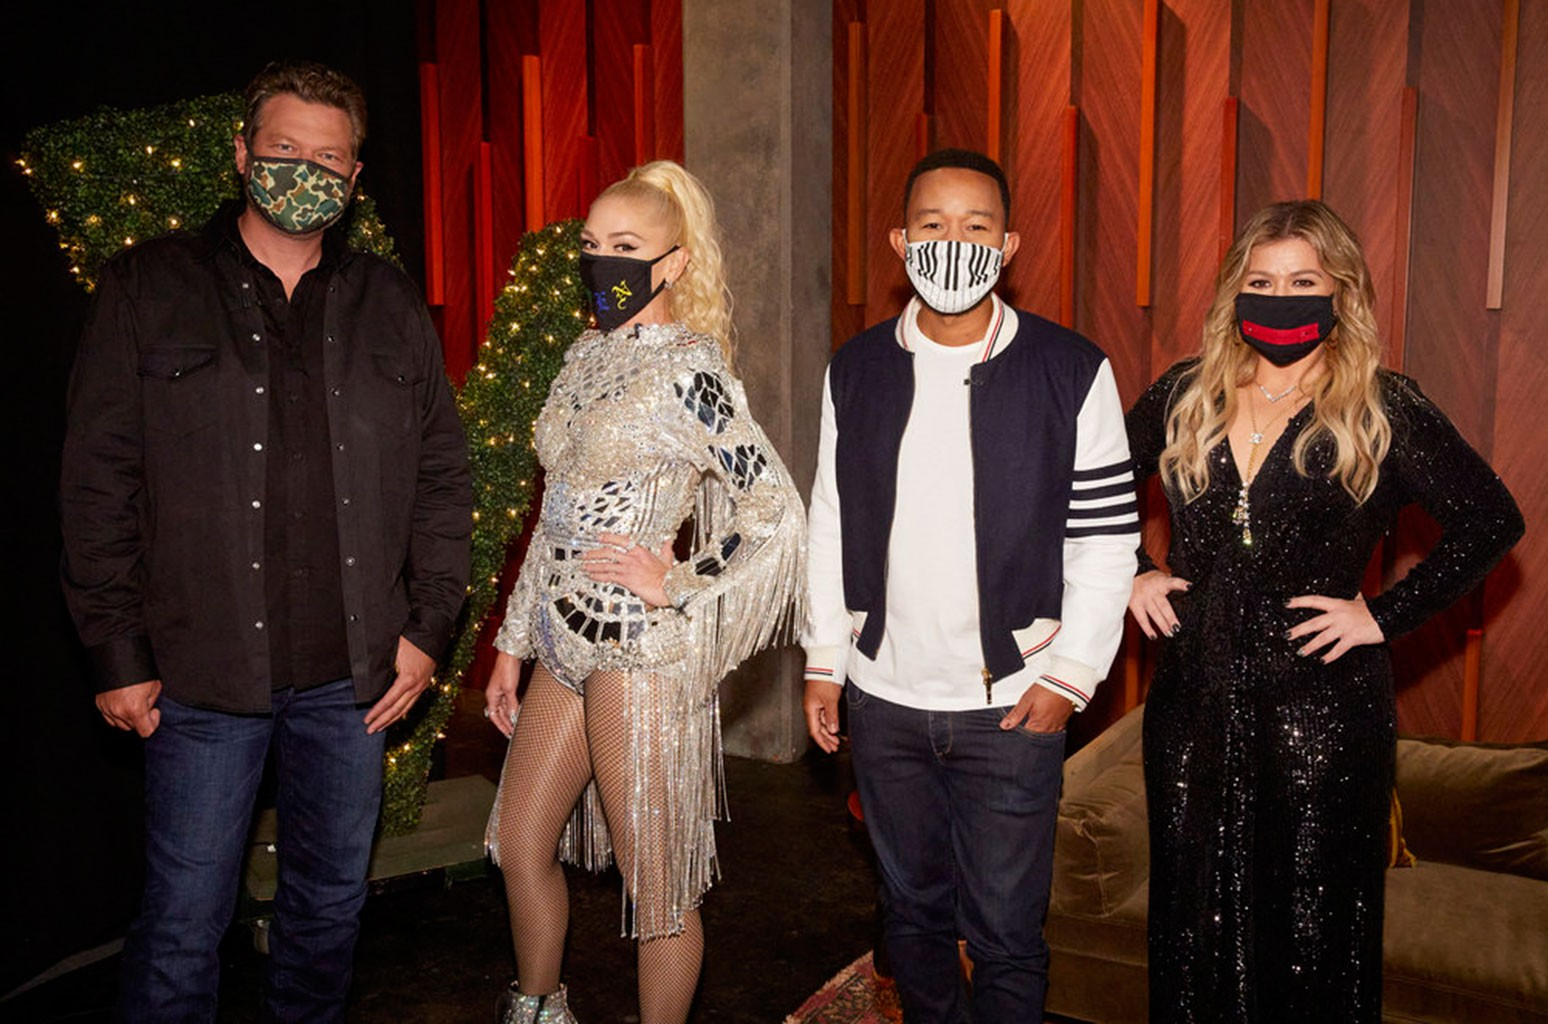 Blake Shelton, Gwen Stefani, John Legend and Kelly Clarkson